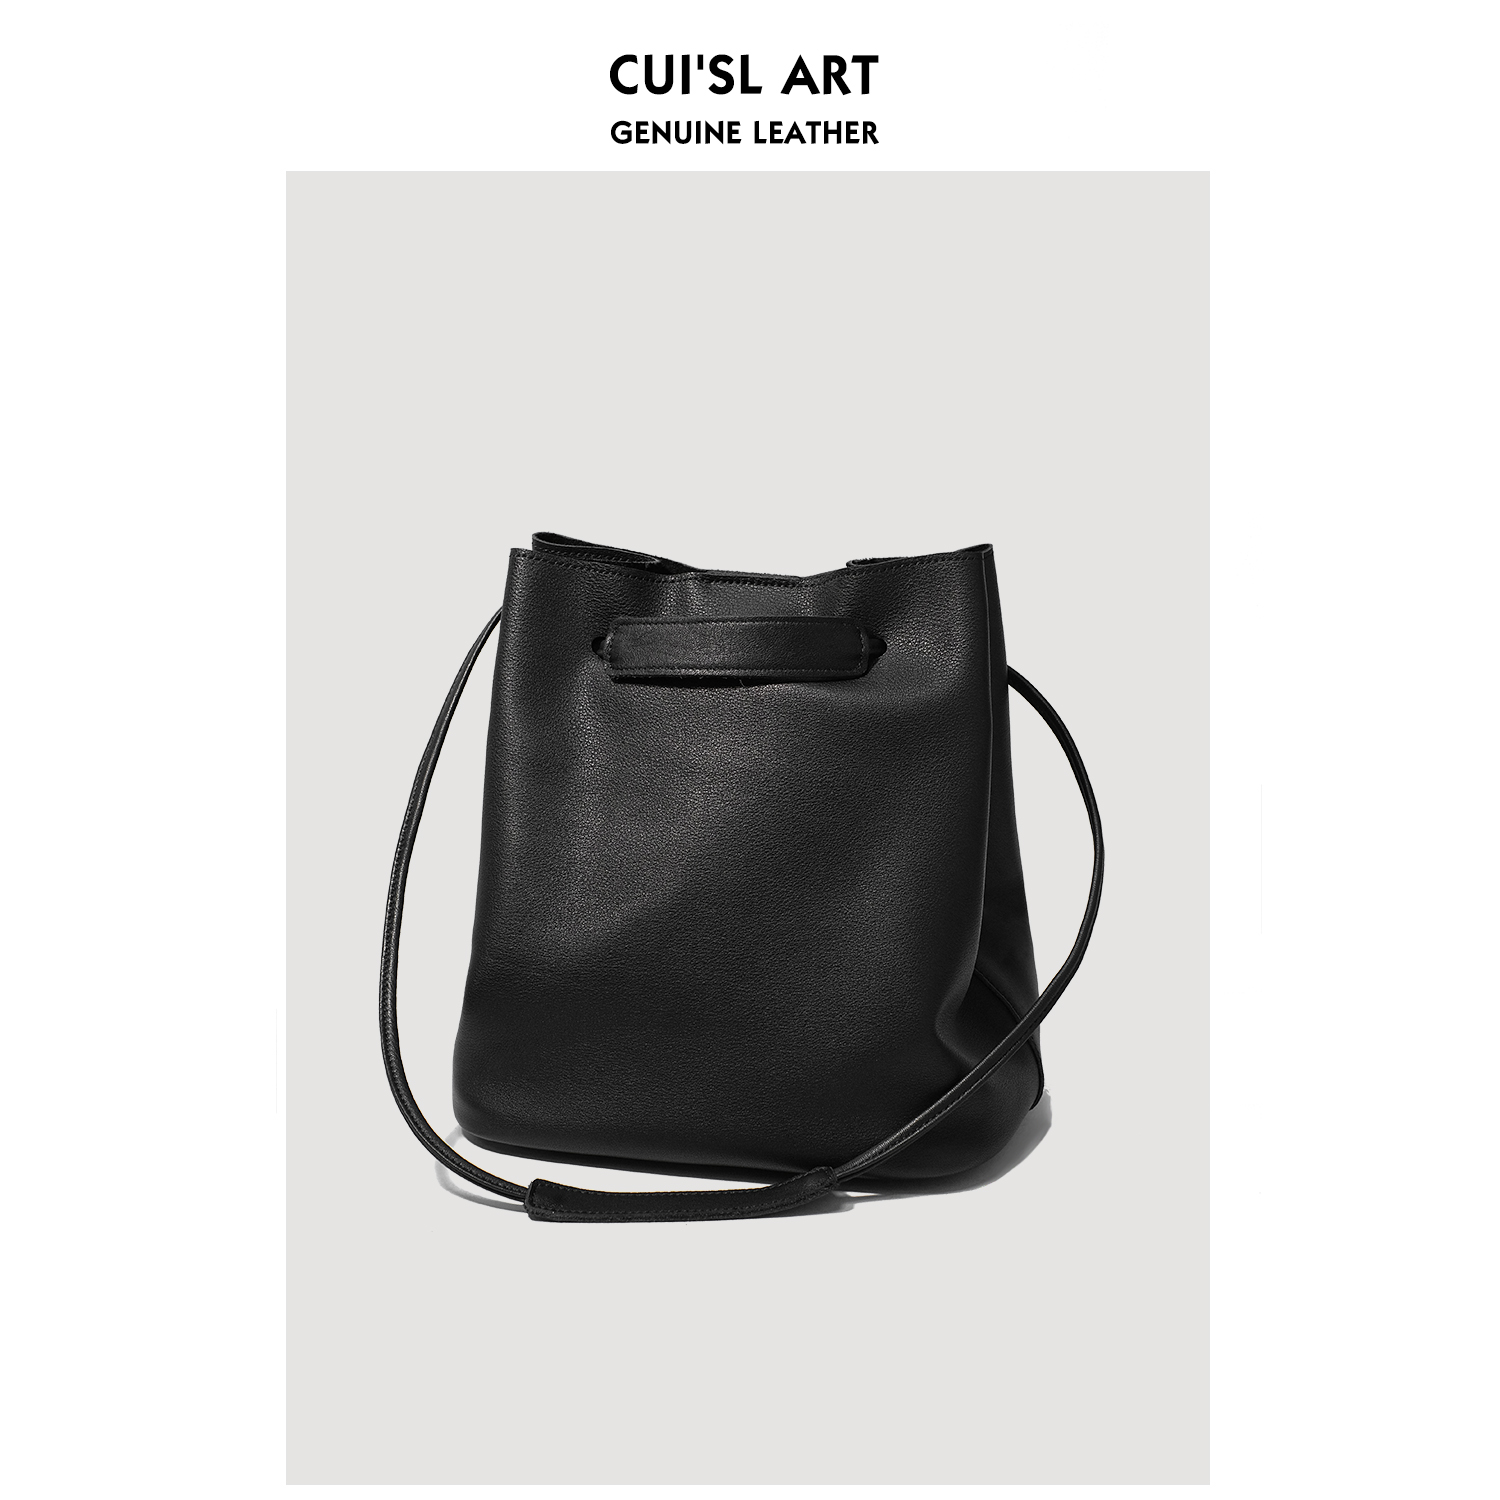 Cuis leather texture head layer cowhy pumping rope bucket bag one-shoulder oblique stiletto large-capacity stylish hand-held leather womens bag